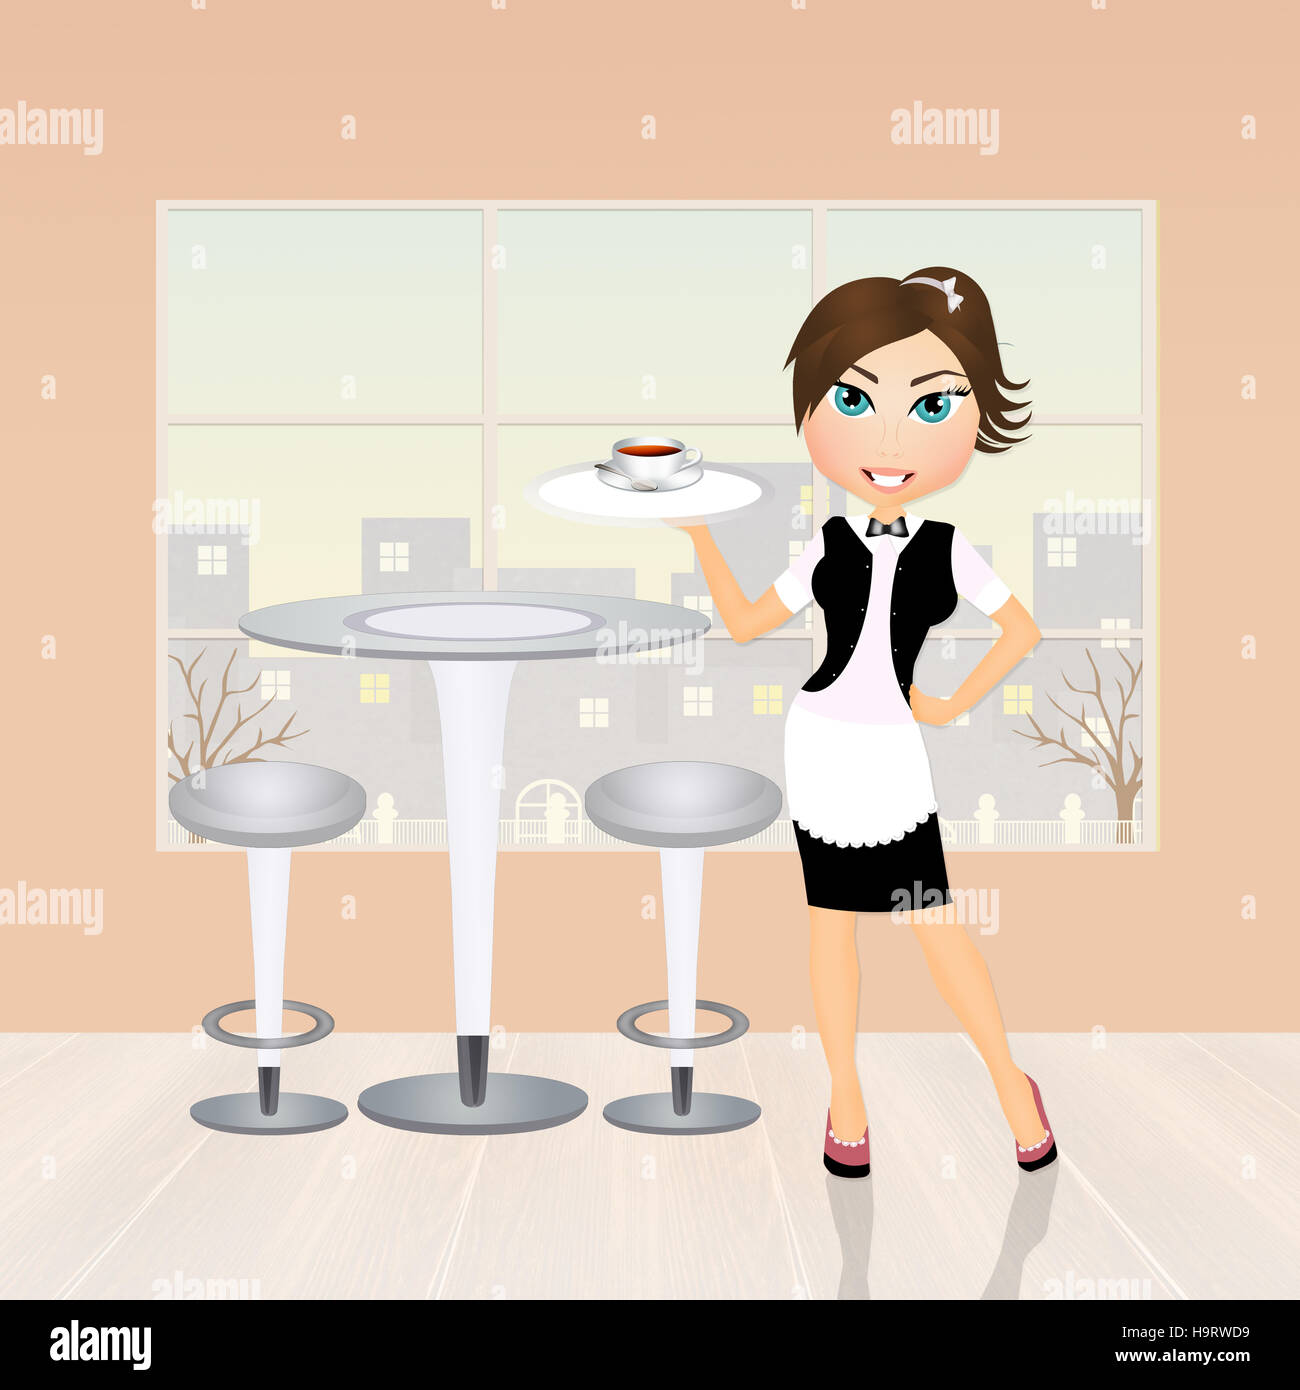 girl serving cafè Stock Photo